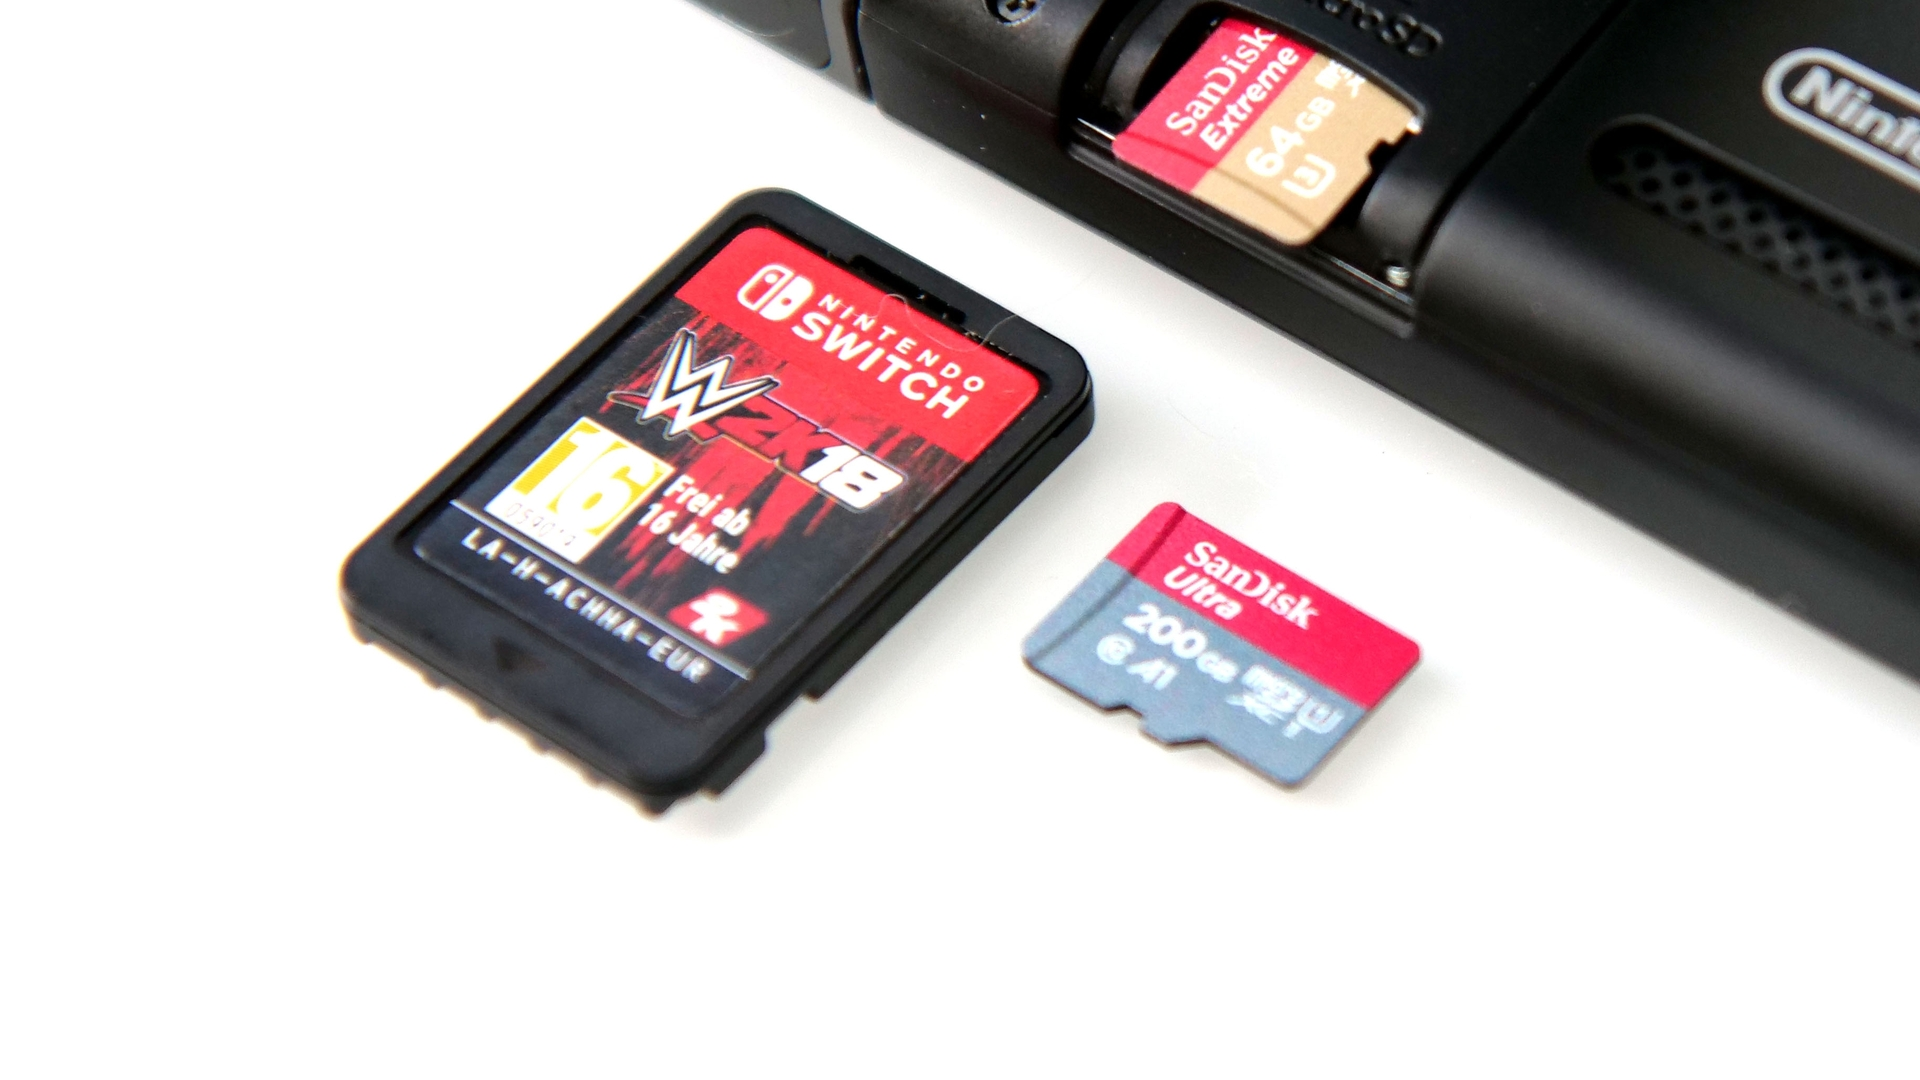 The Best Micro Sd Cards For Nintendo Switch Team Card Class 10 Uhs 1 45mb S 16gb Sdcard